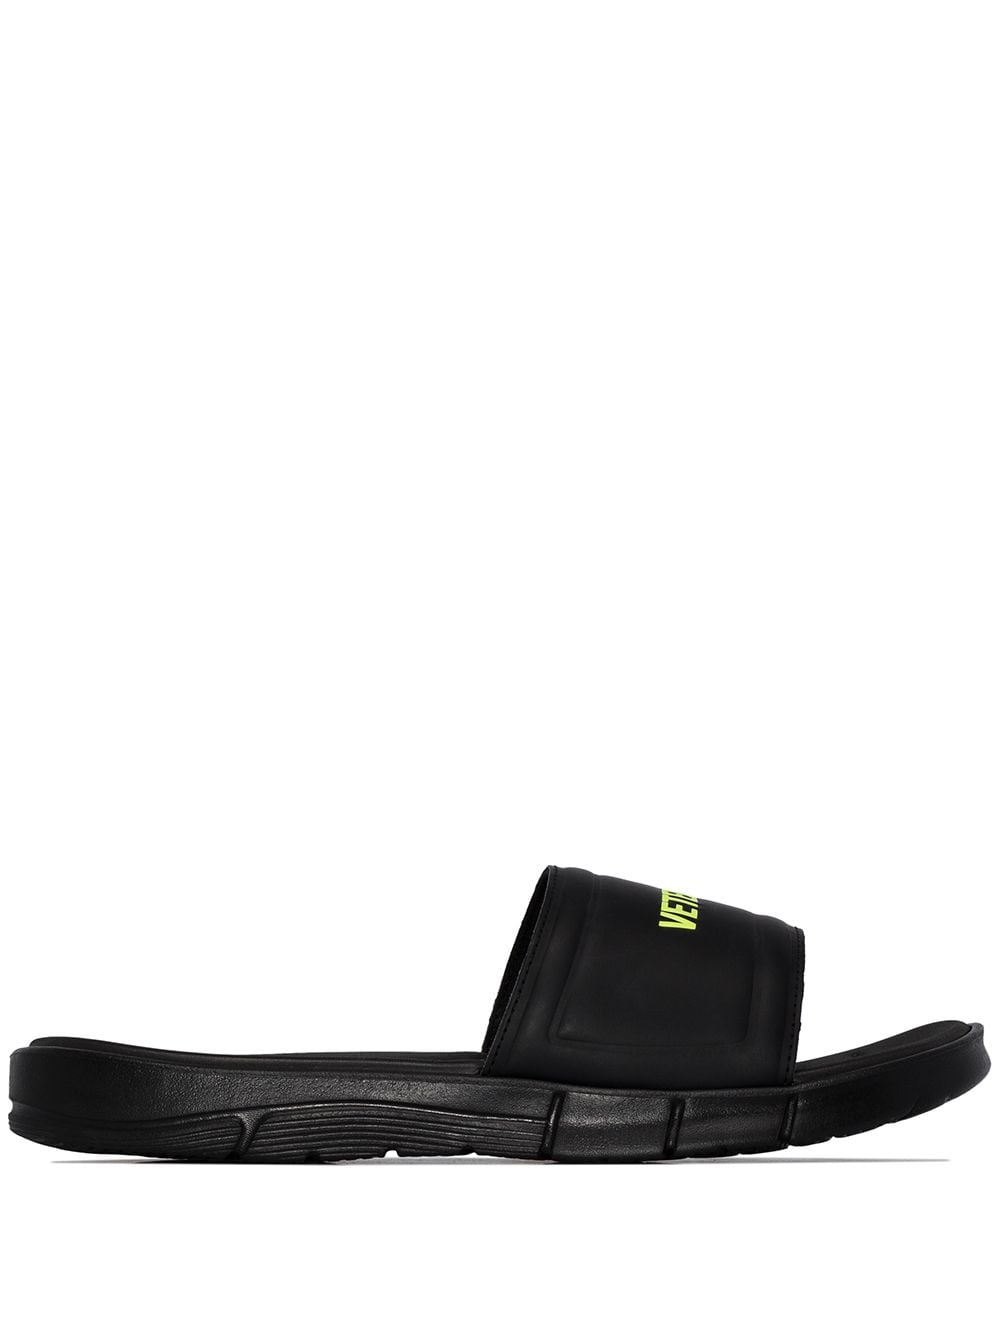 VETEMENTS logo sliders black - Maison De Fashion